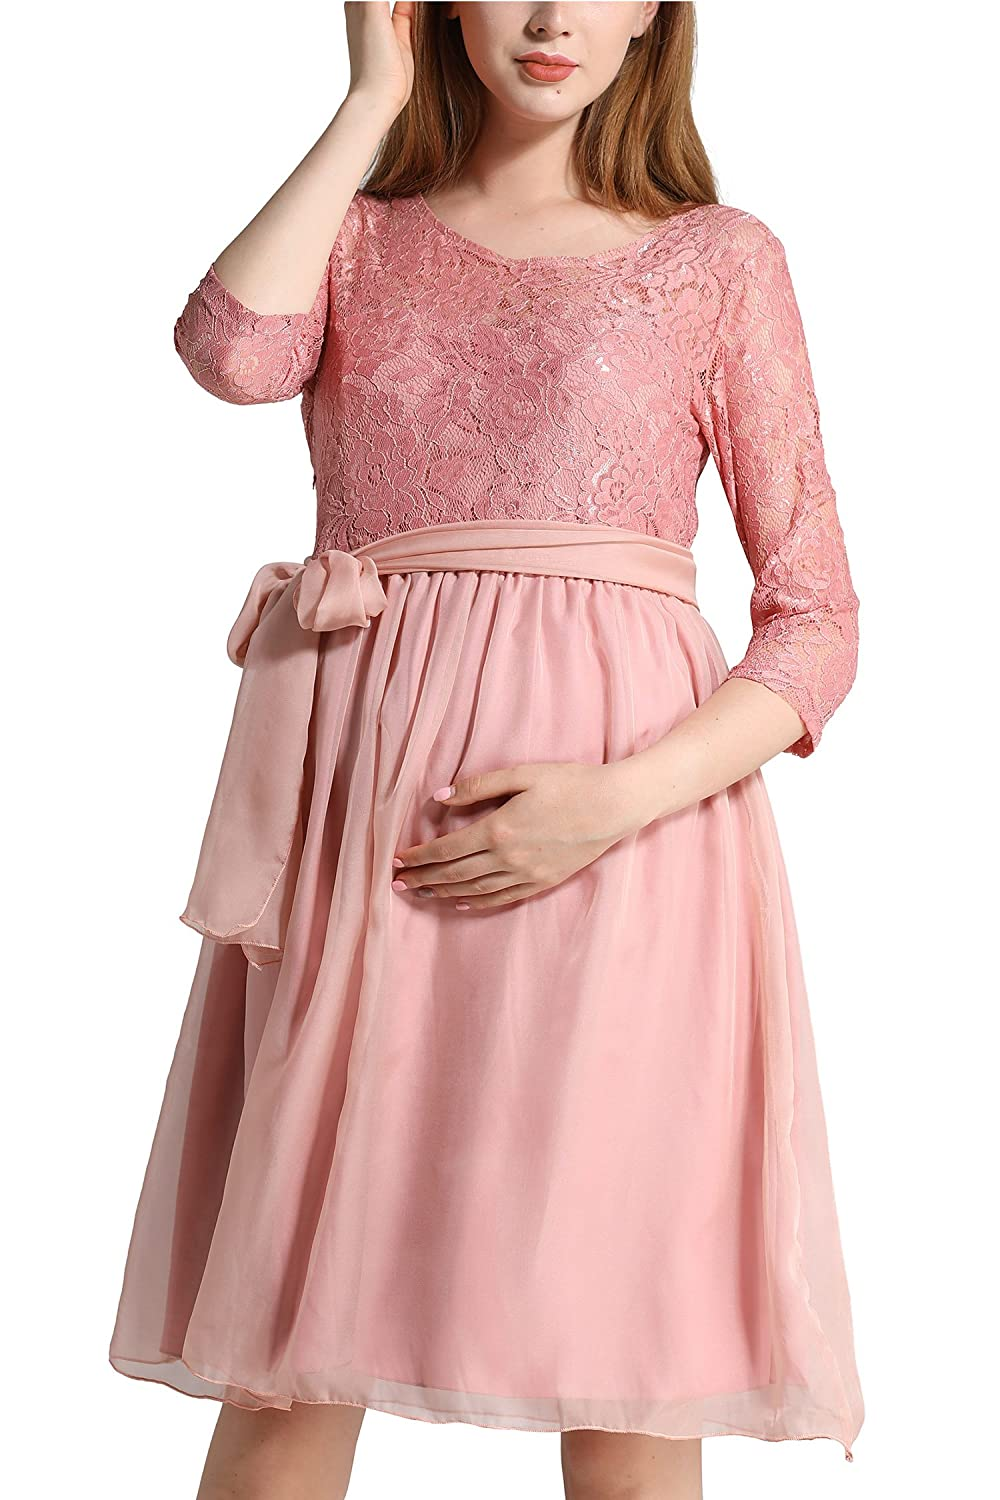 Molliya Maternity Dress Floral Lace Baby Shower Party Cocktail Dress with Ribbon at Amazon Womens Clothing store: